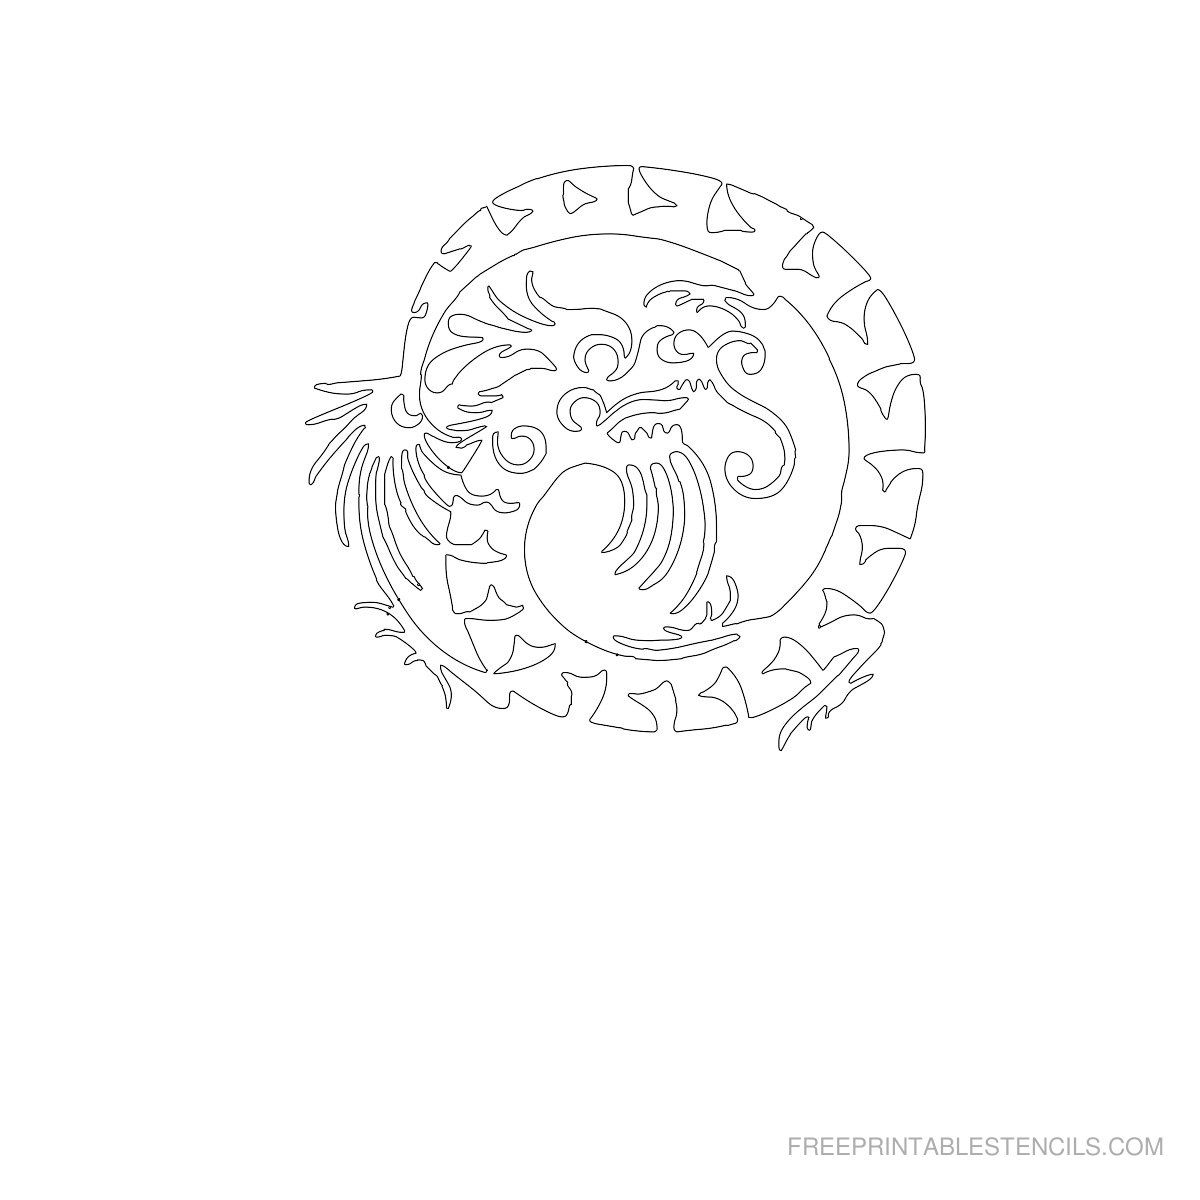 Free Printable Dragon Stencil F | Crafts To Try | Pinterest - Free Printable Dragon Stencils